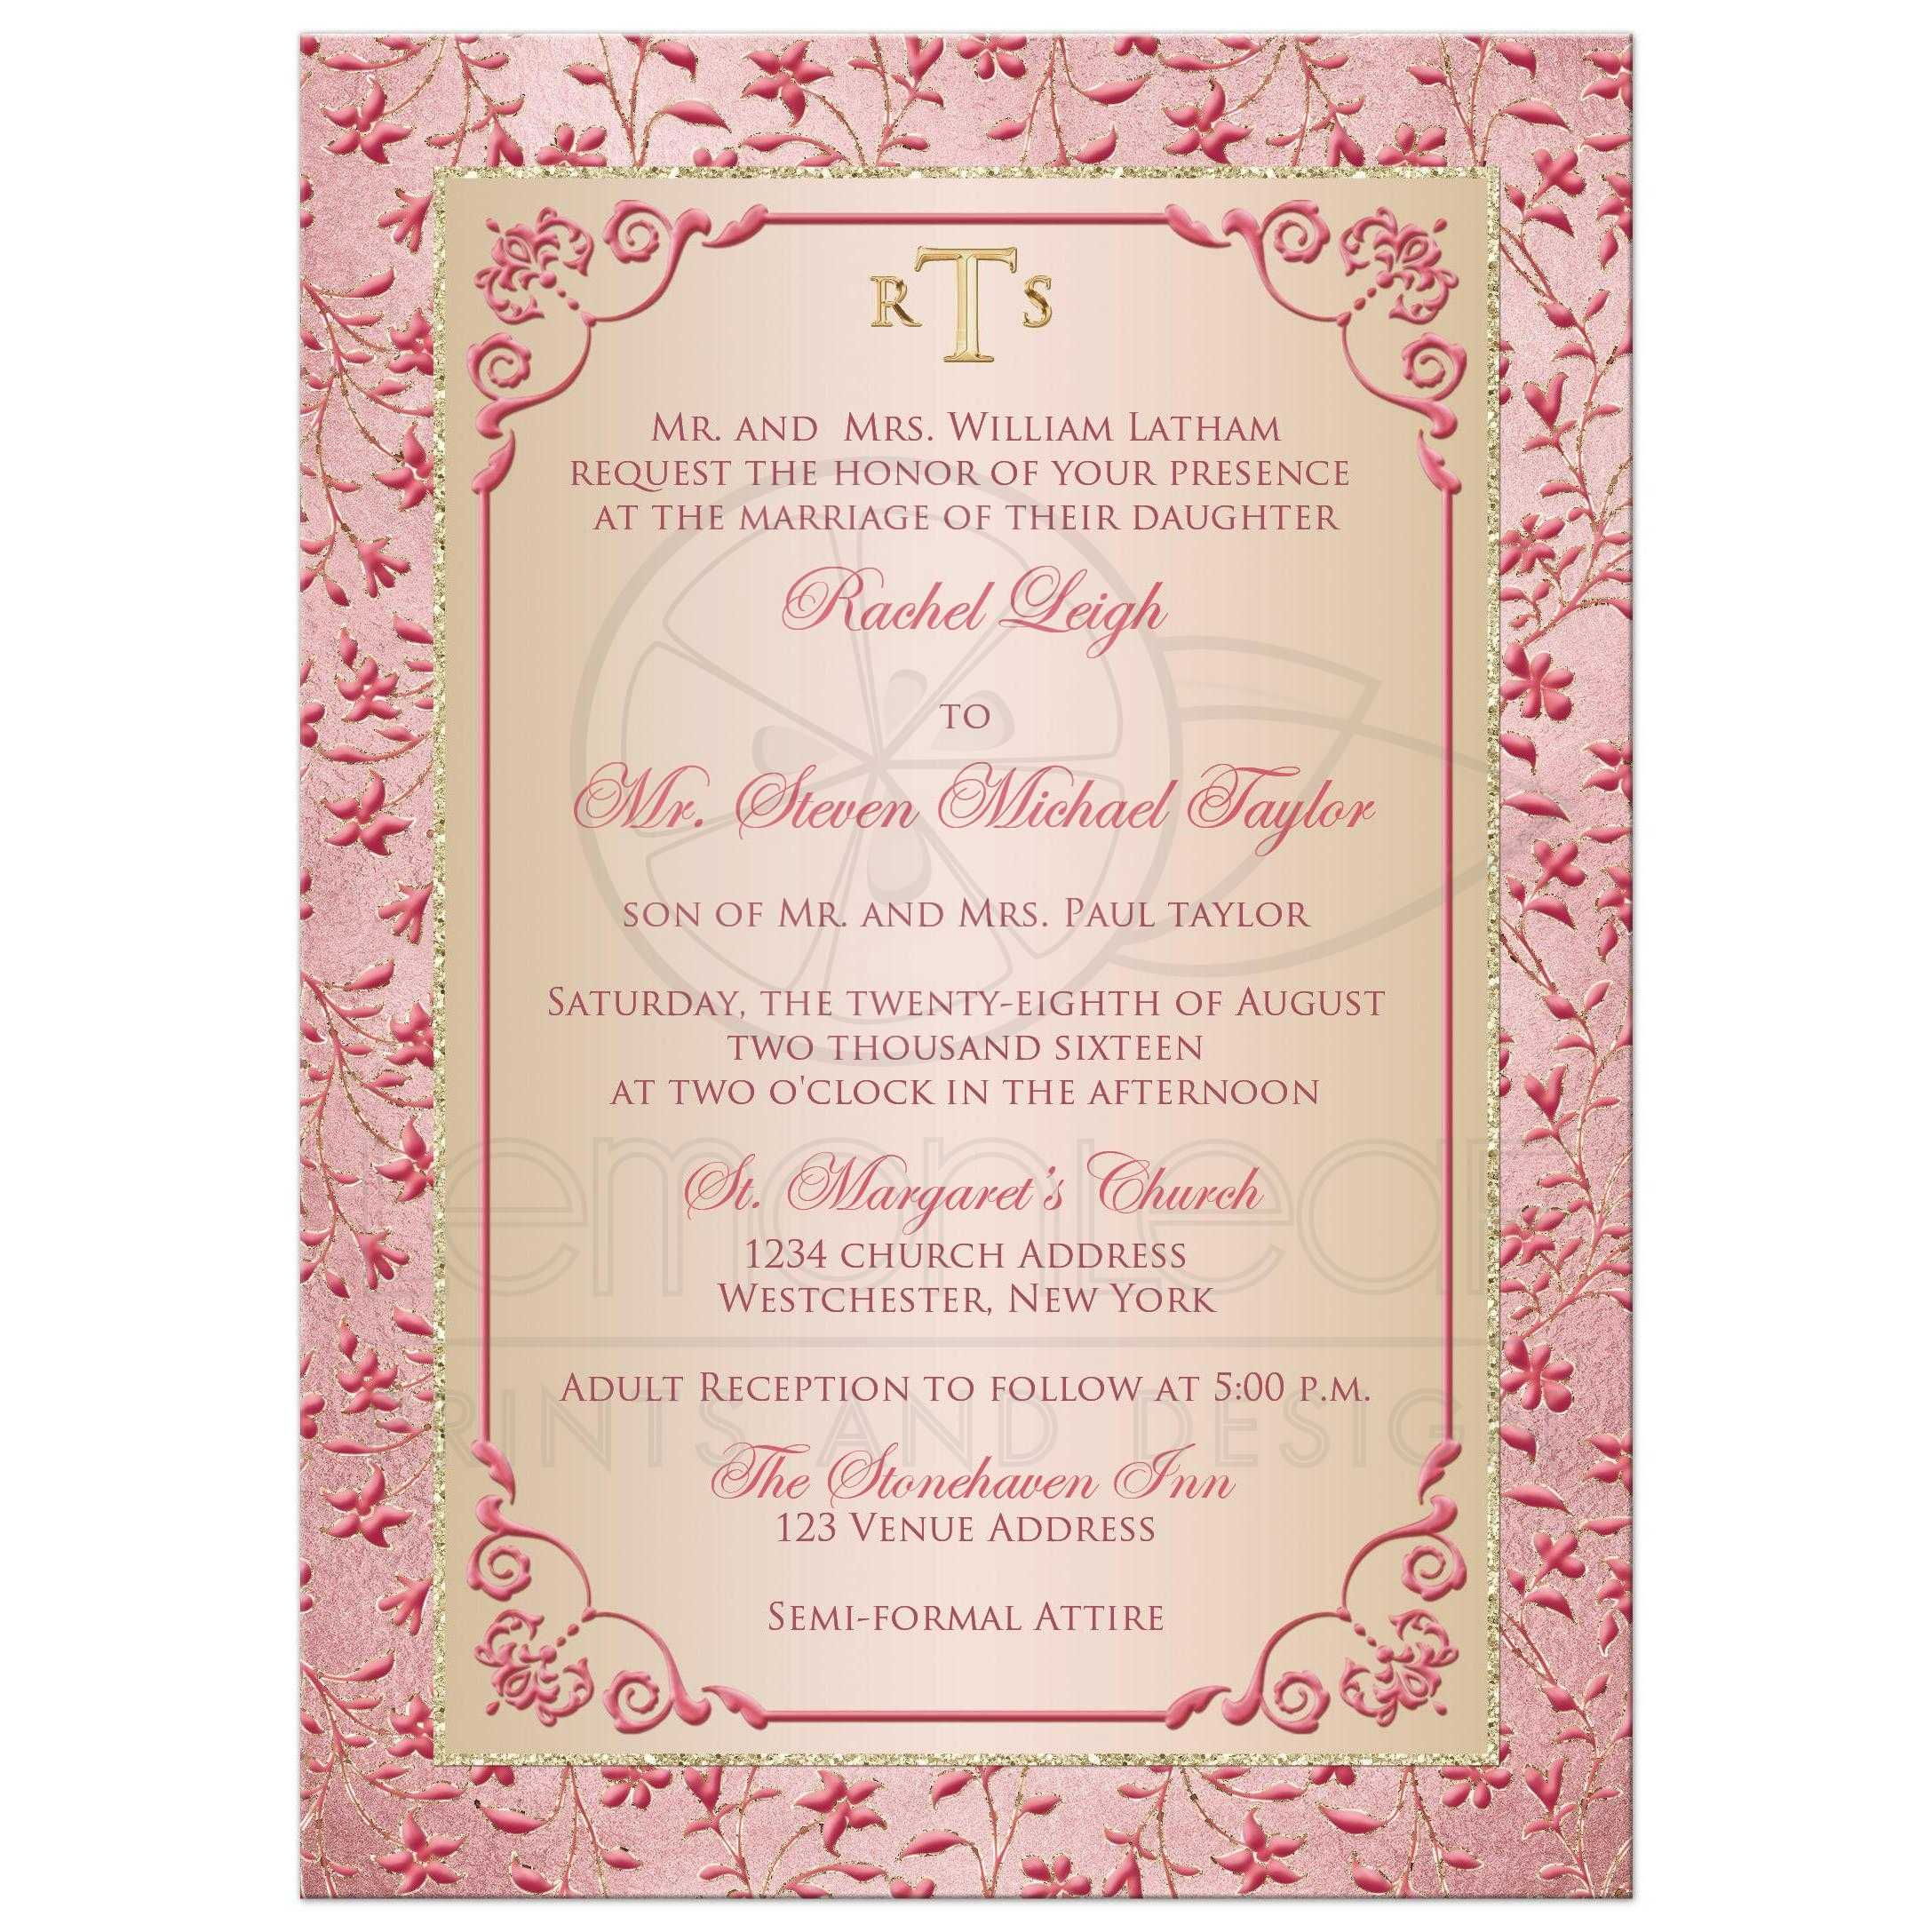 Monogrammed Wedding Invitation | Blush Pink, Dusty Rose, Champagne ...